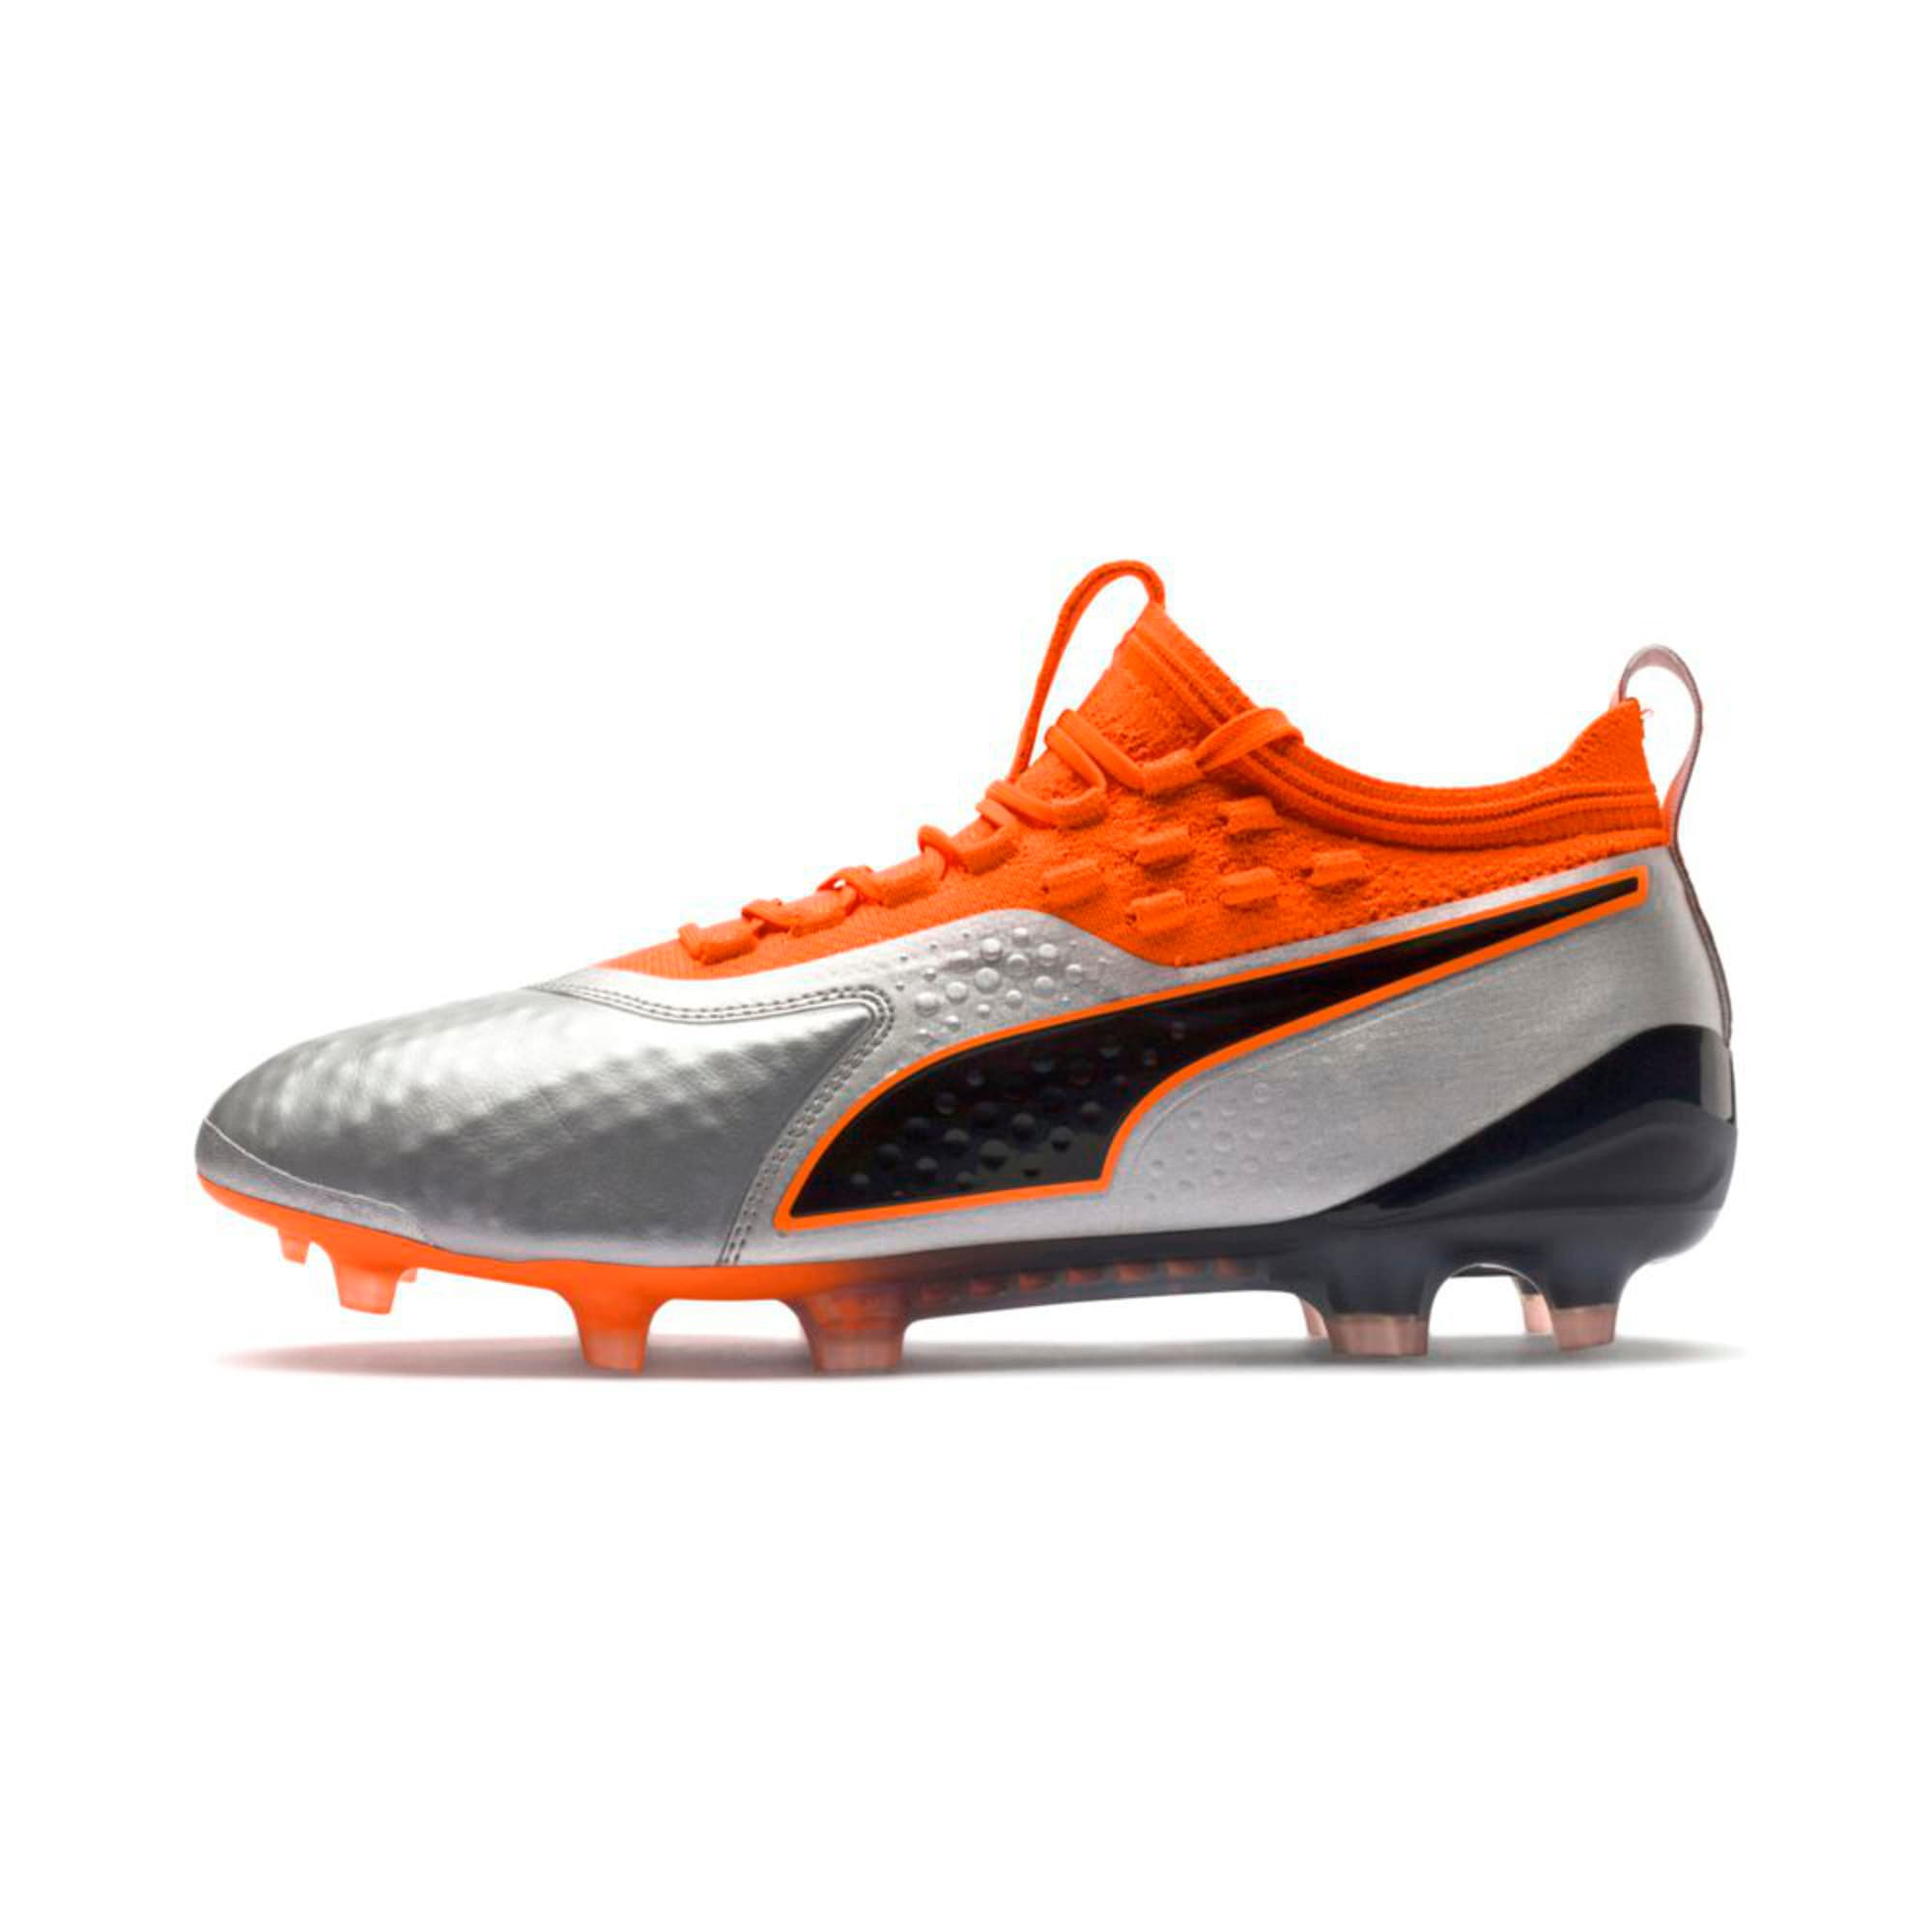 Thumbnail 1 of PUMA ONE 1 Leather FG/AG Men's Football Boots, Silver-Orange-Black, medium-IND